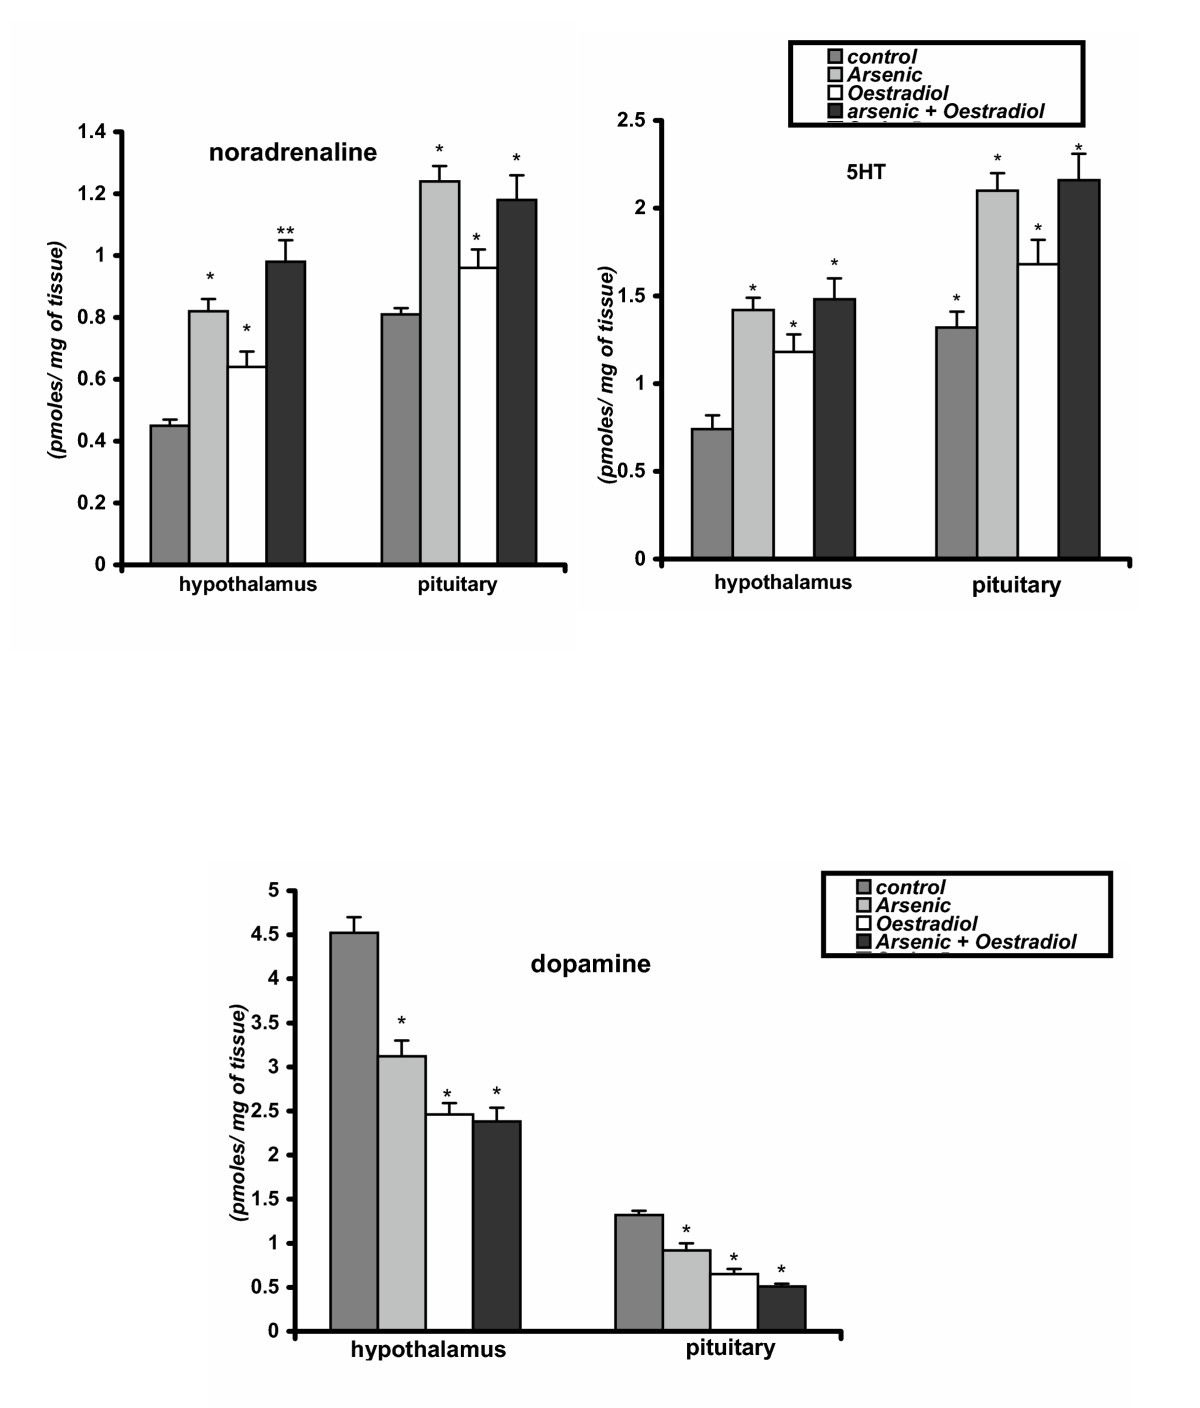 http://static-content.springer.com/image/art%3A10.1186%2F1477-7827-4-9/MediaObjects/12958_2005_Article_291_Fig4_HTML.jpg